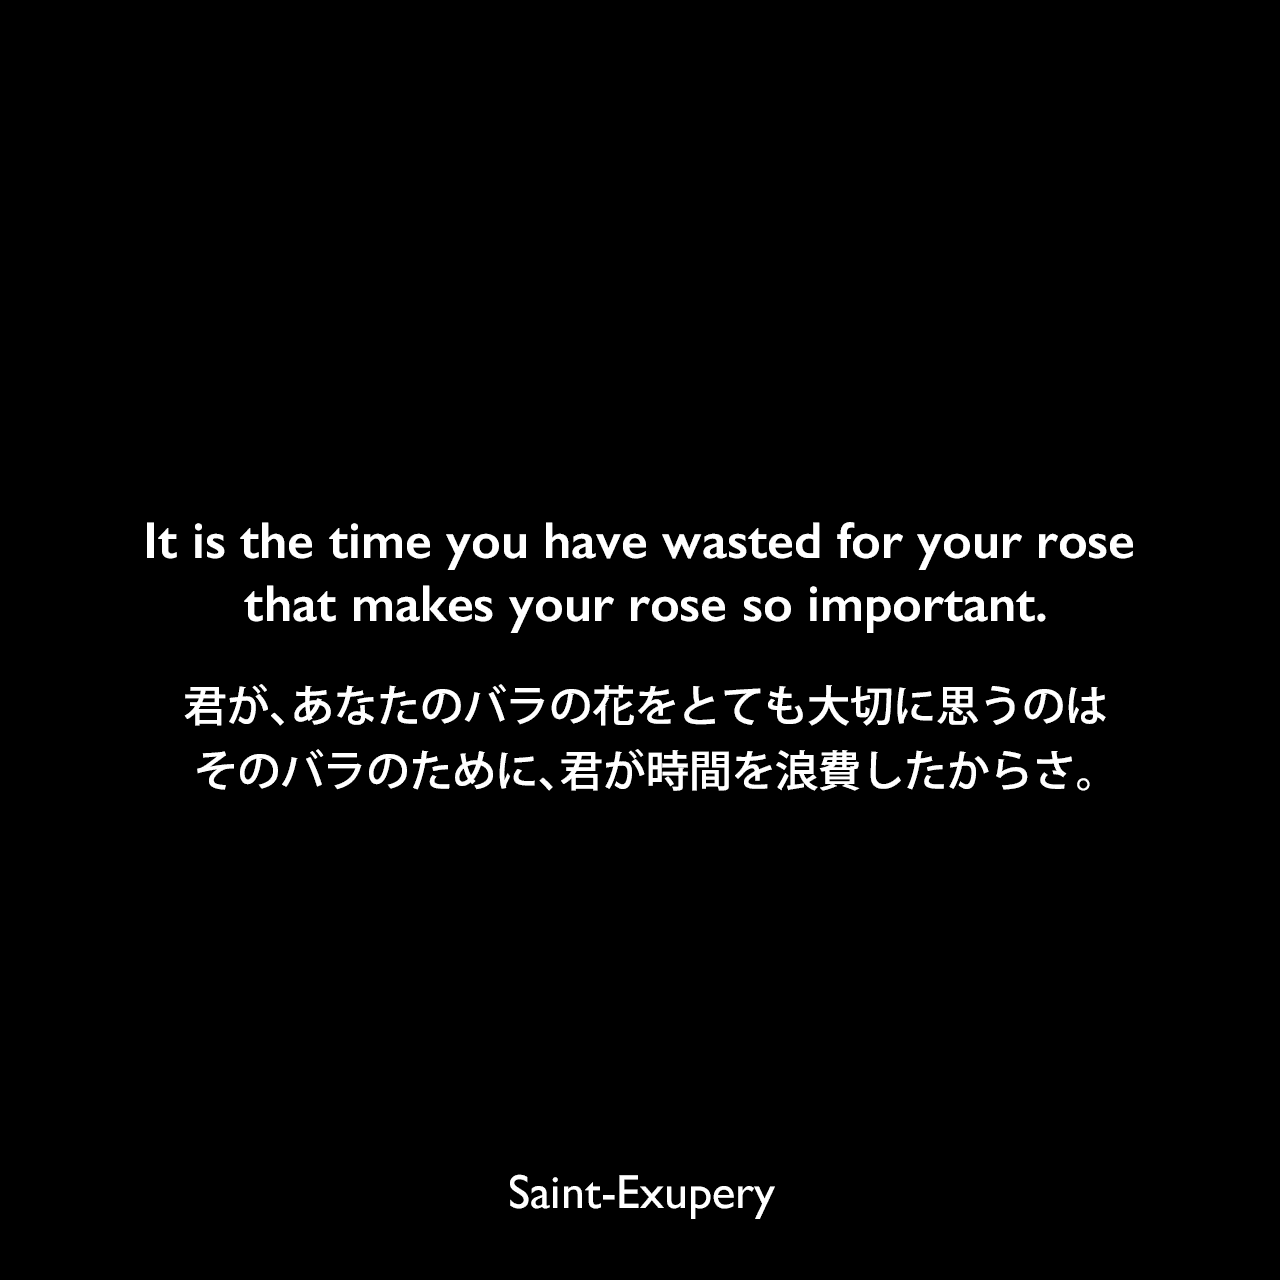 It is the time you have wasted for your rose that makes your rose so important.君が、あなたのバラの花をとても大切に思うのは、そのバラのために、君が時間を浪費したからさ。